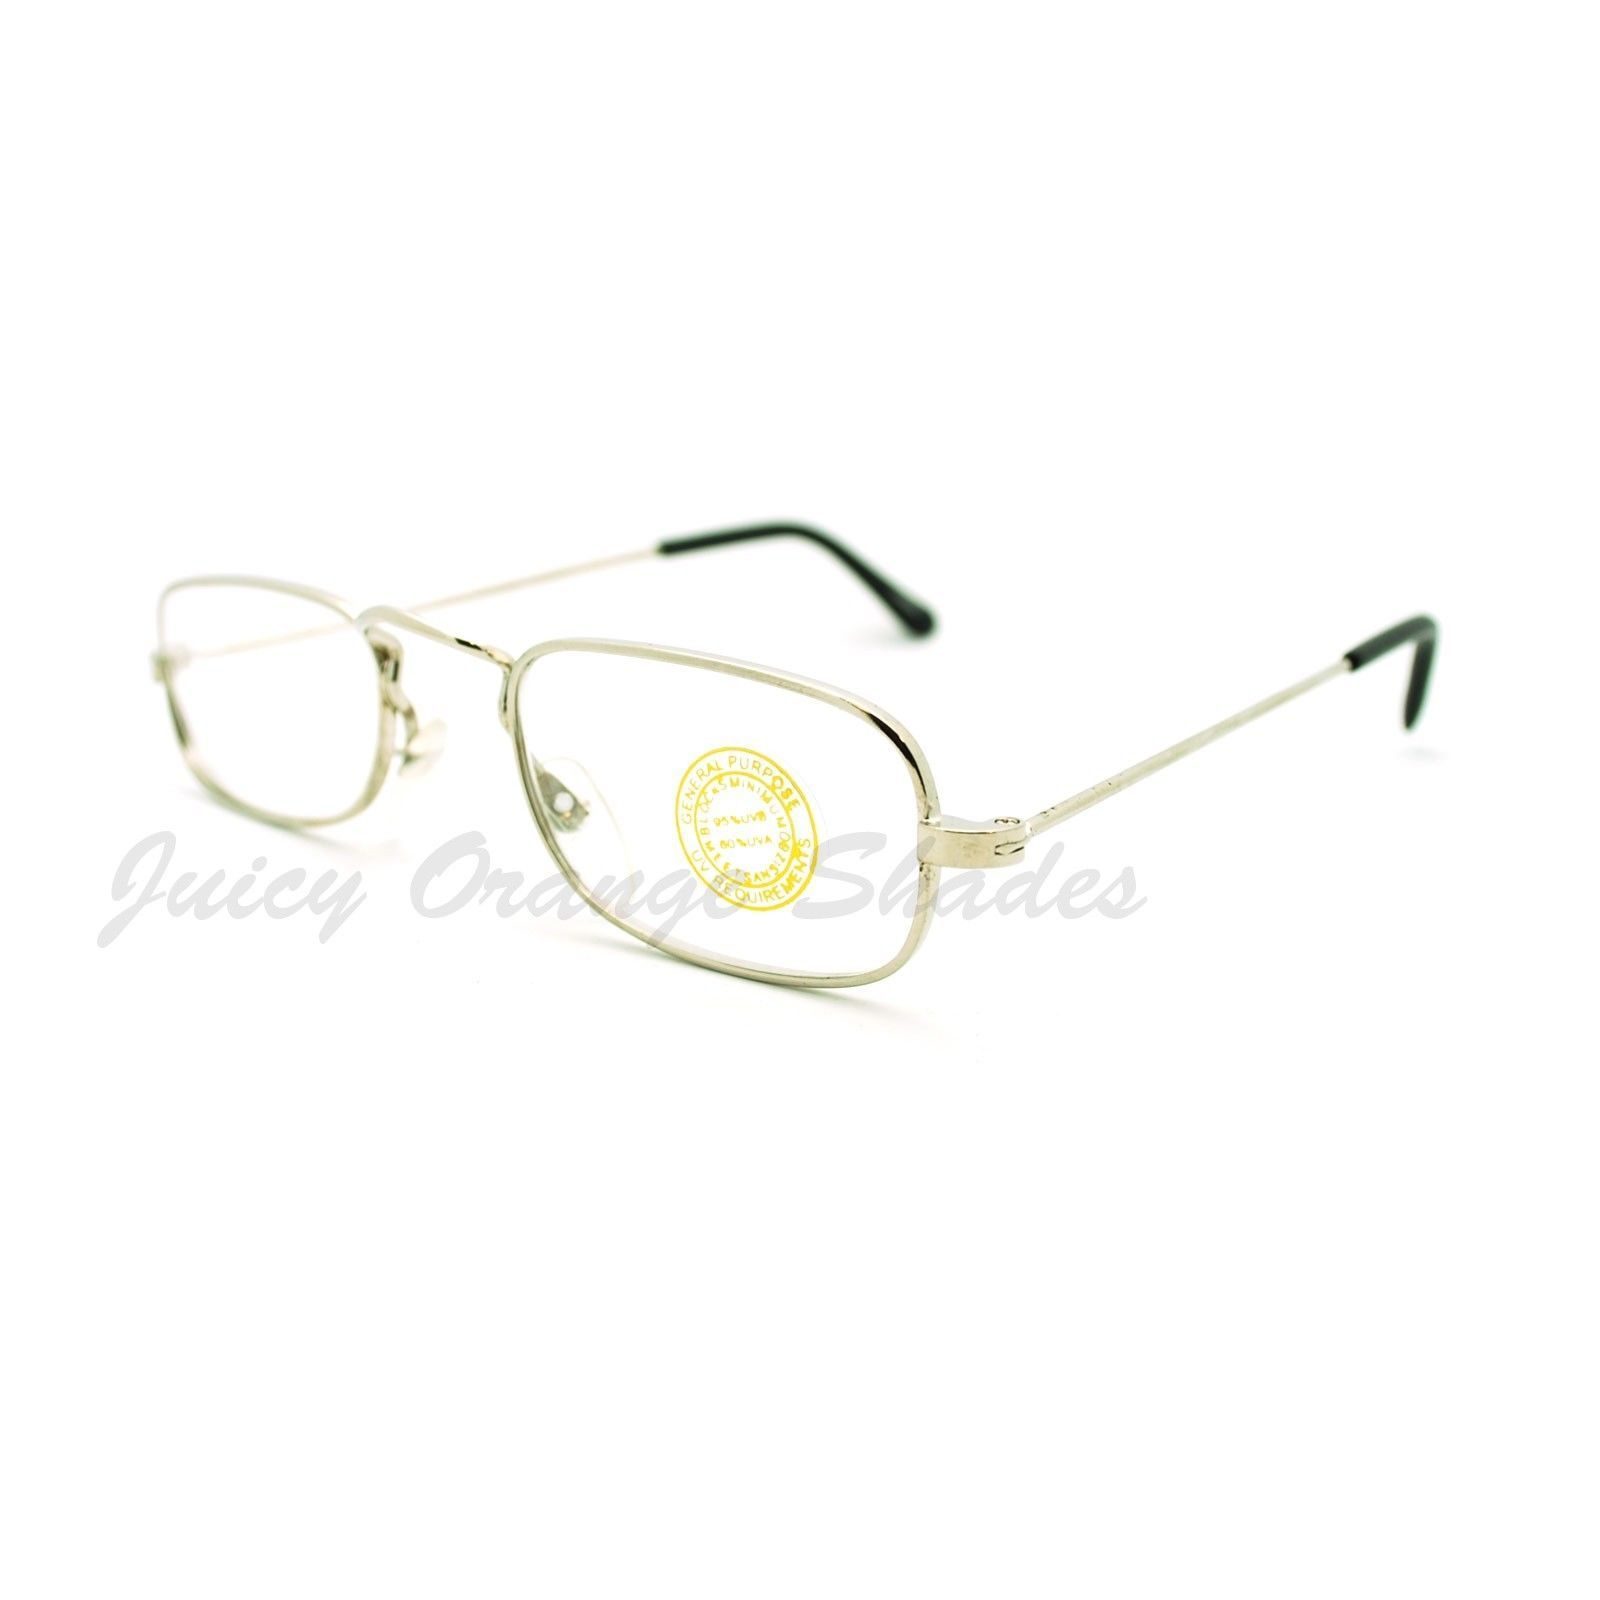 Clear Lens Glasses Thin Light Metal Frame Small Narrow Rectangular Lens